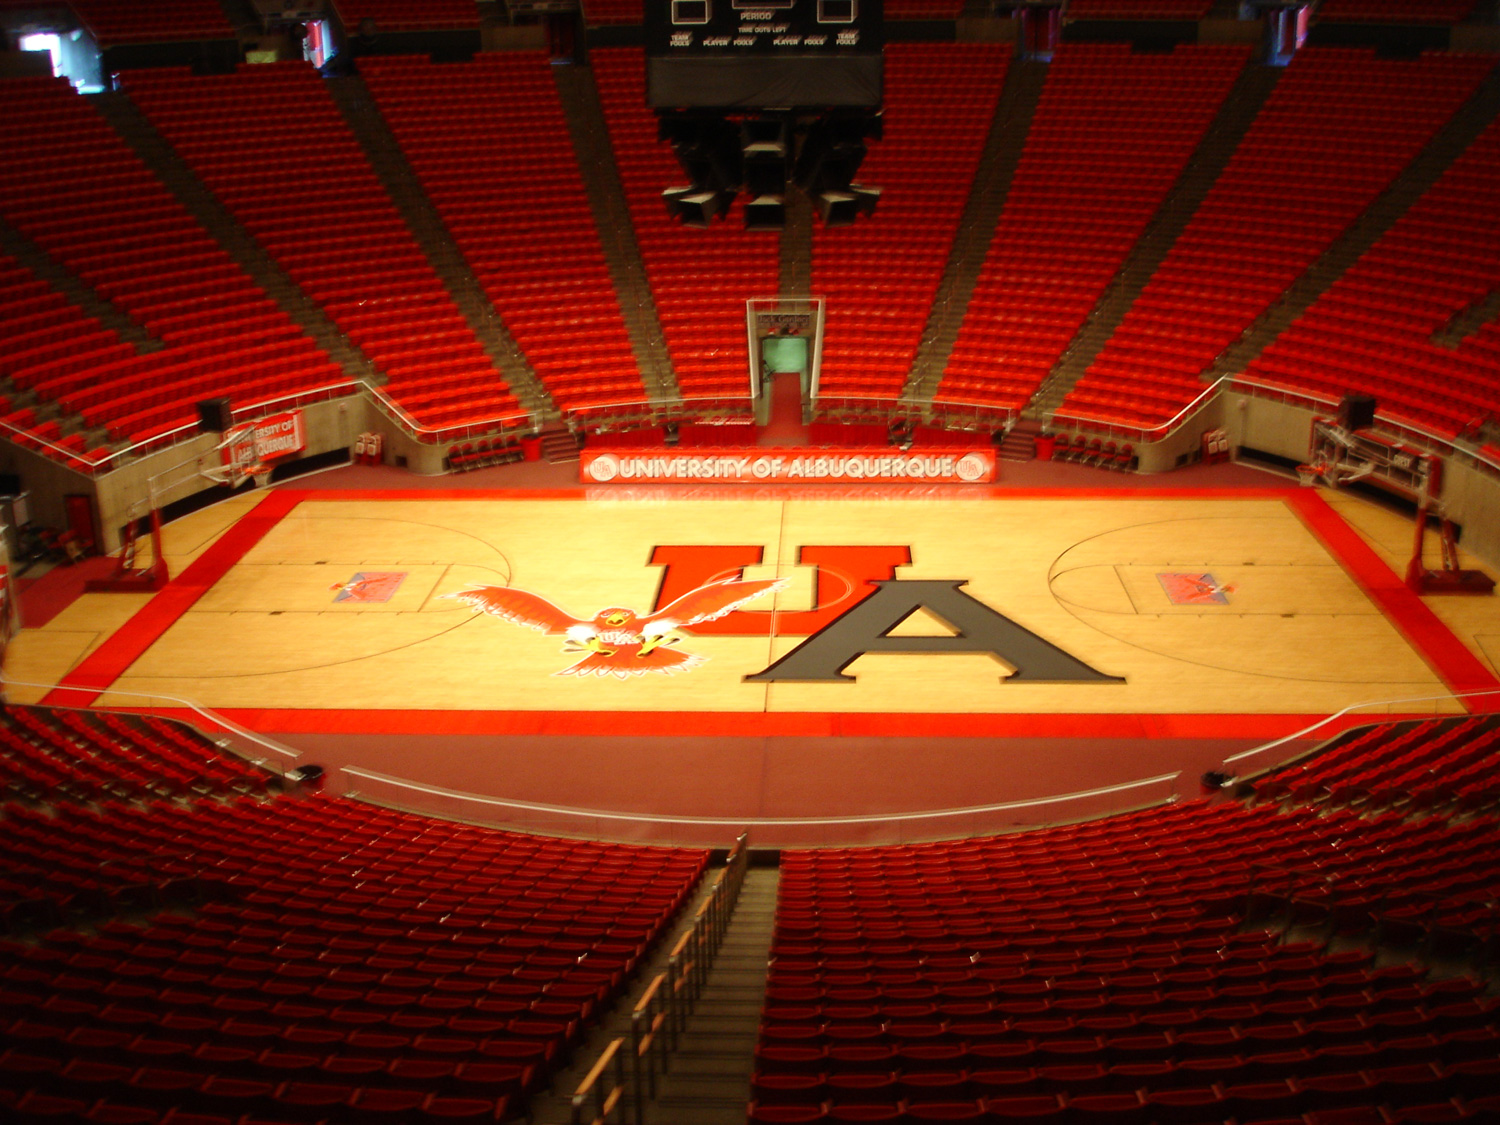 """Over-sized basketball floor graphics to create the """"University of Albuquerque""""."""